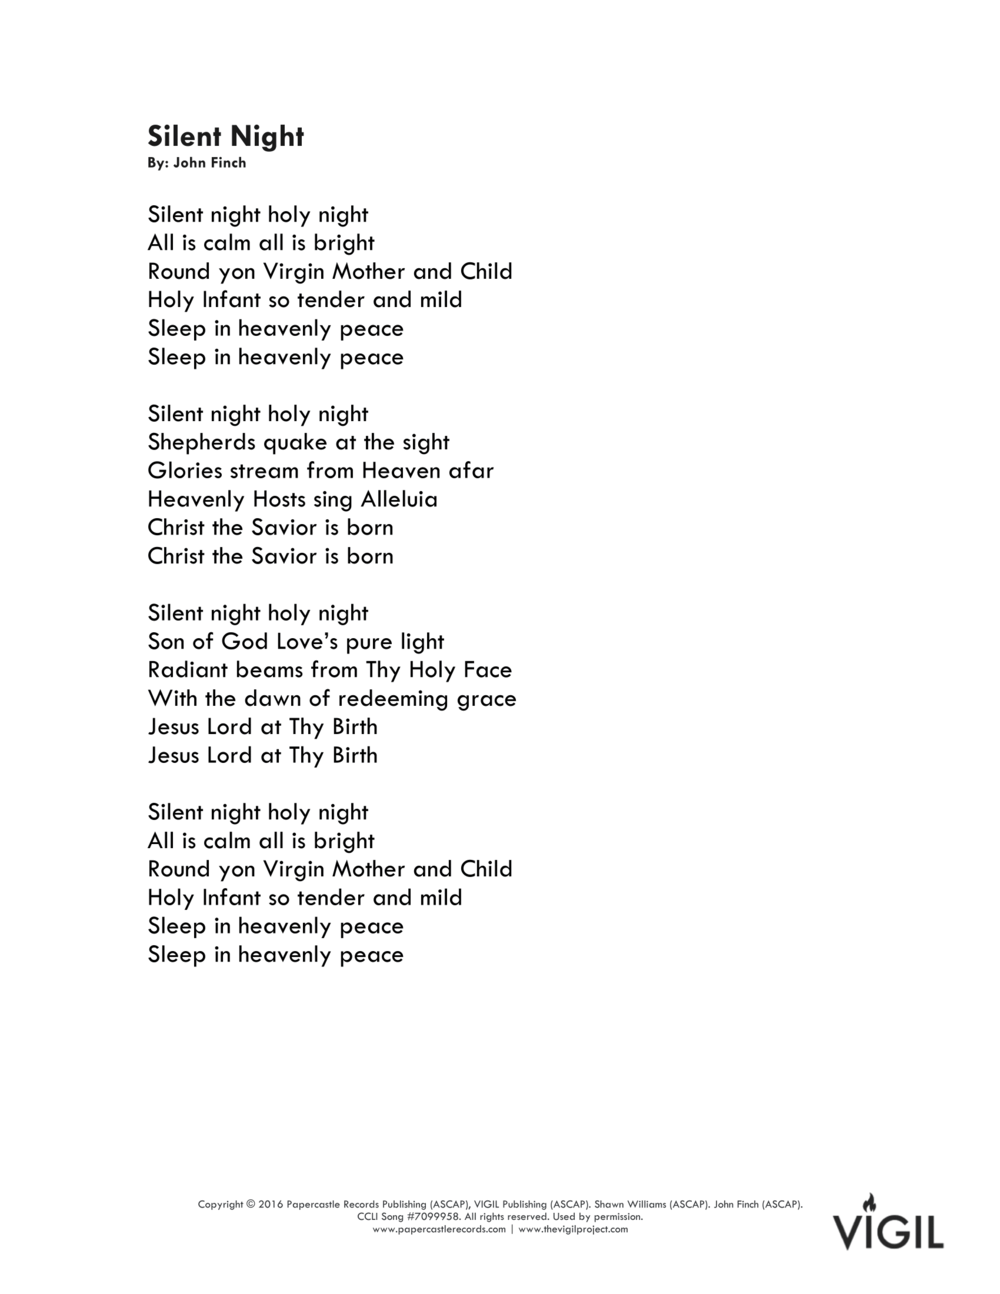 VIGIL S2 - Silent Night (Lyrics)-1.png